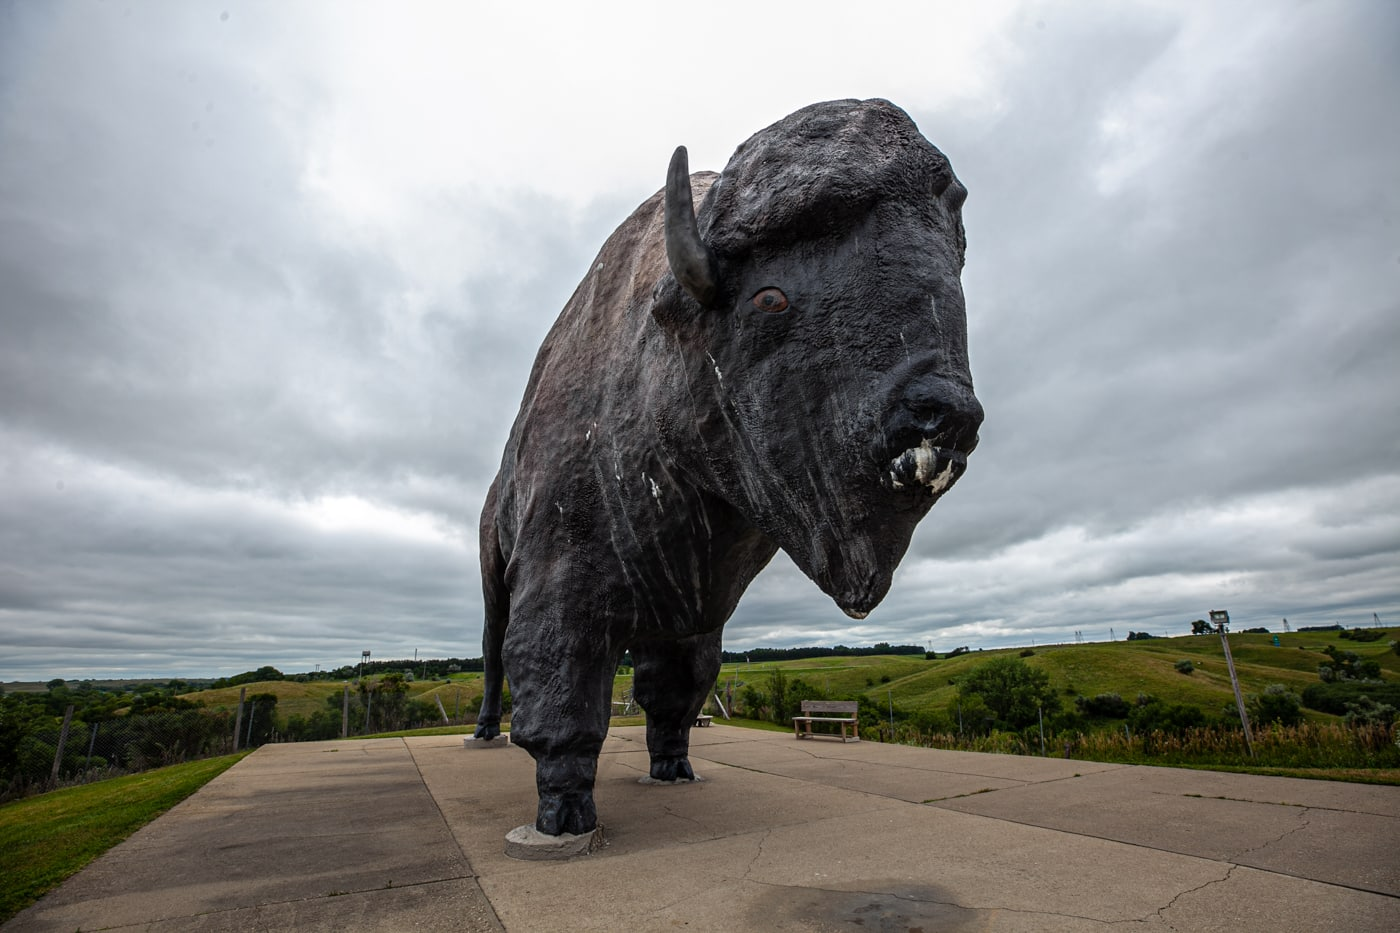 World's Largest Buffalo in Jamestown, North Dakota Roadside Attraction.